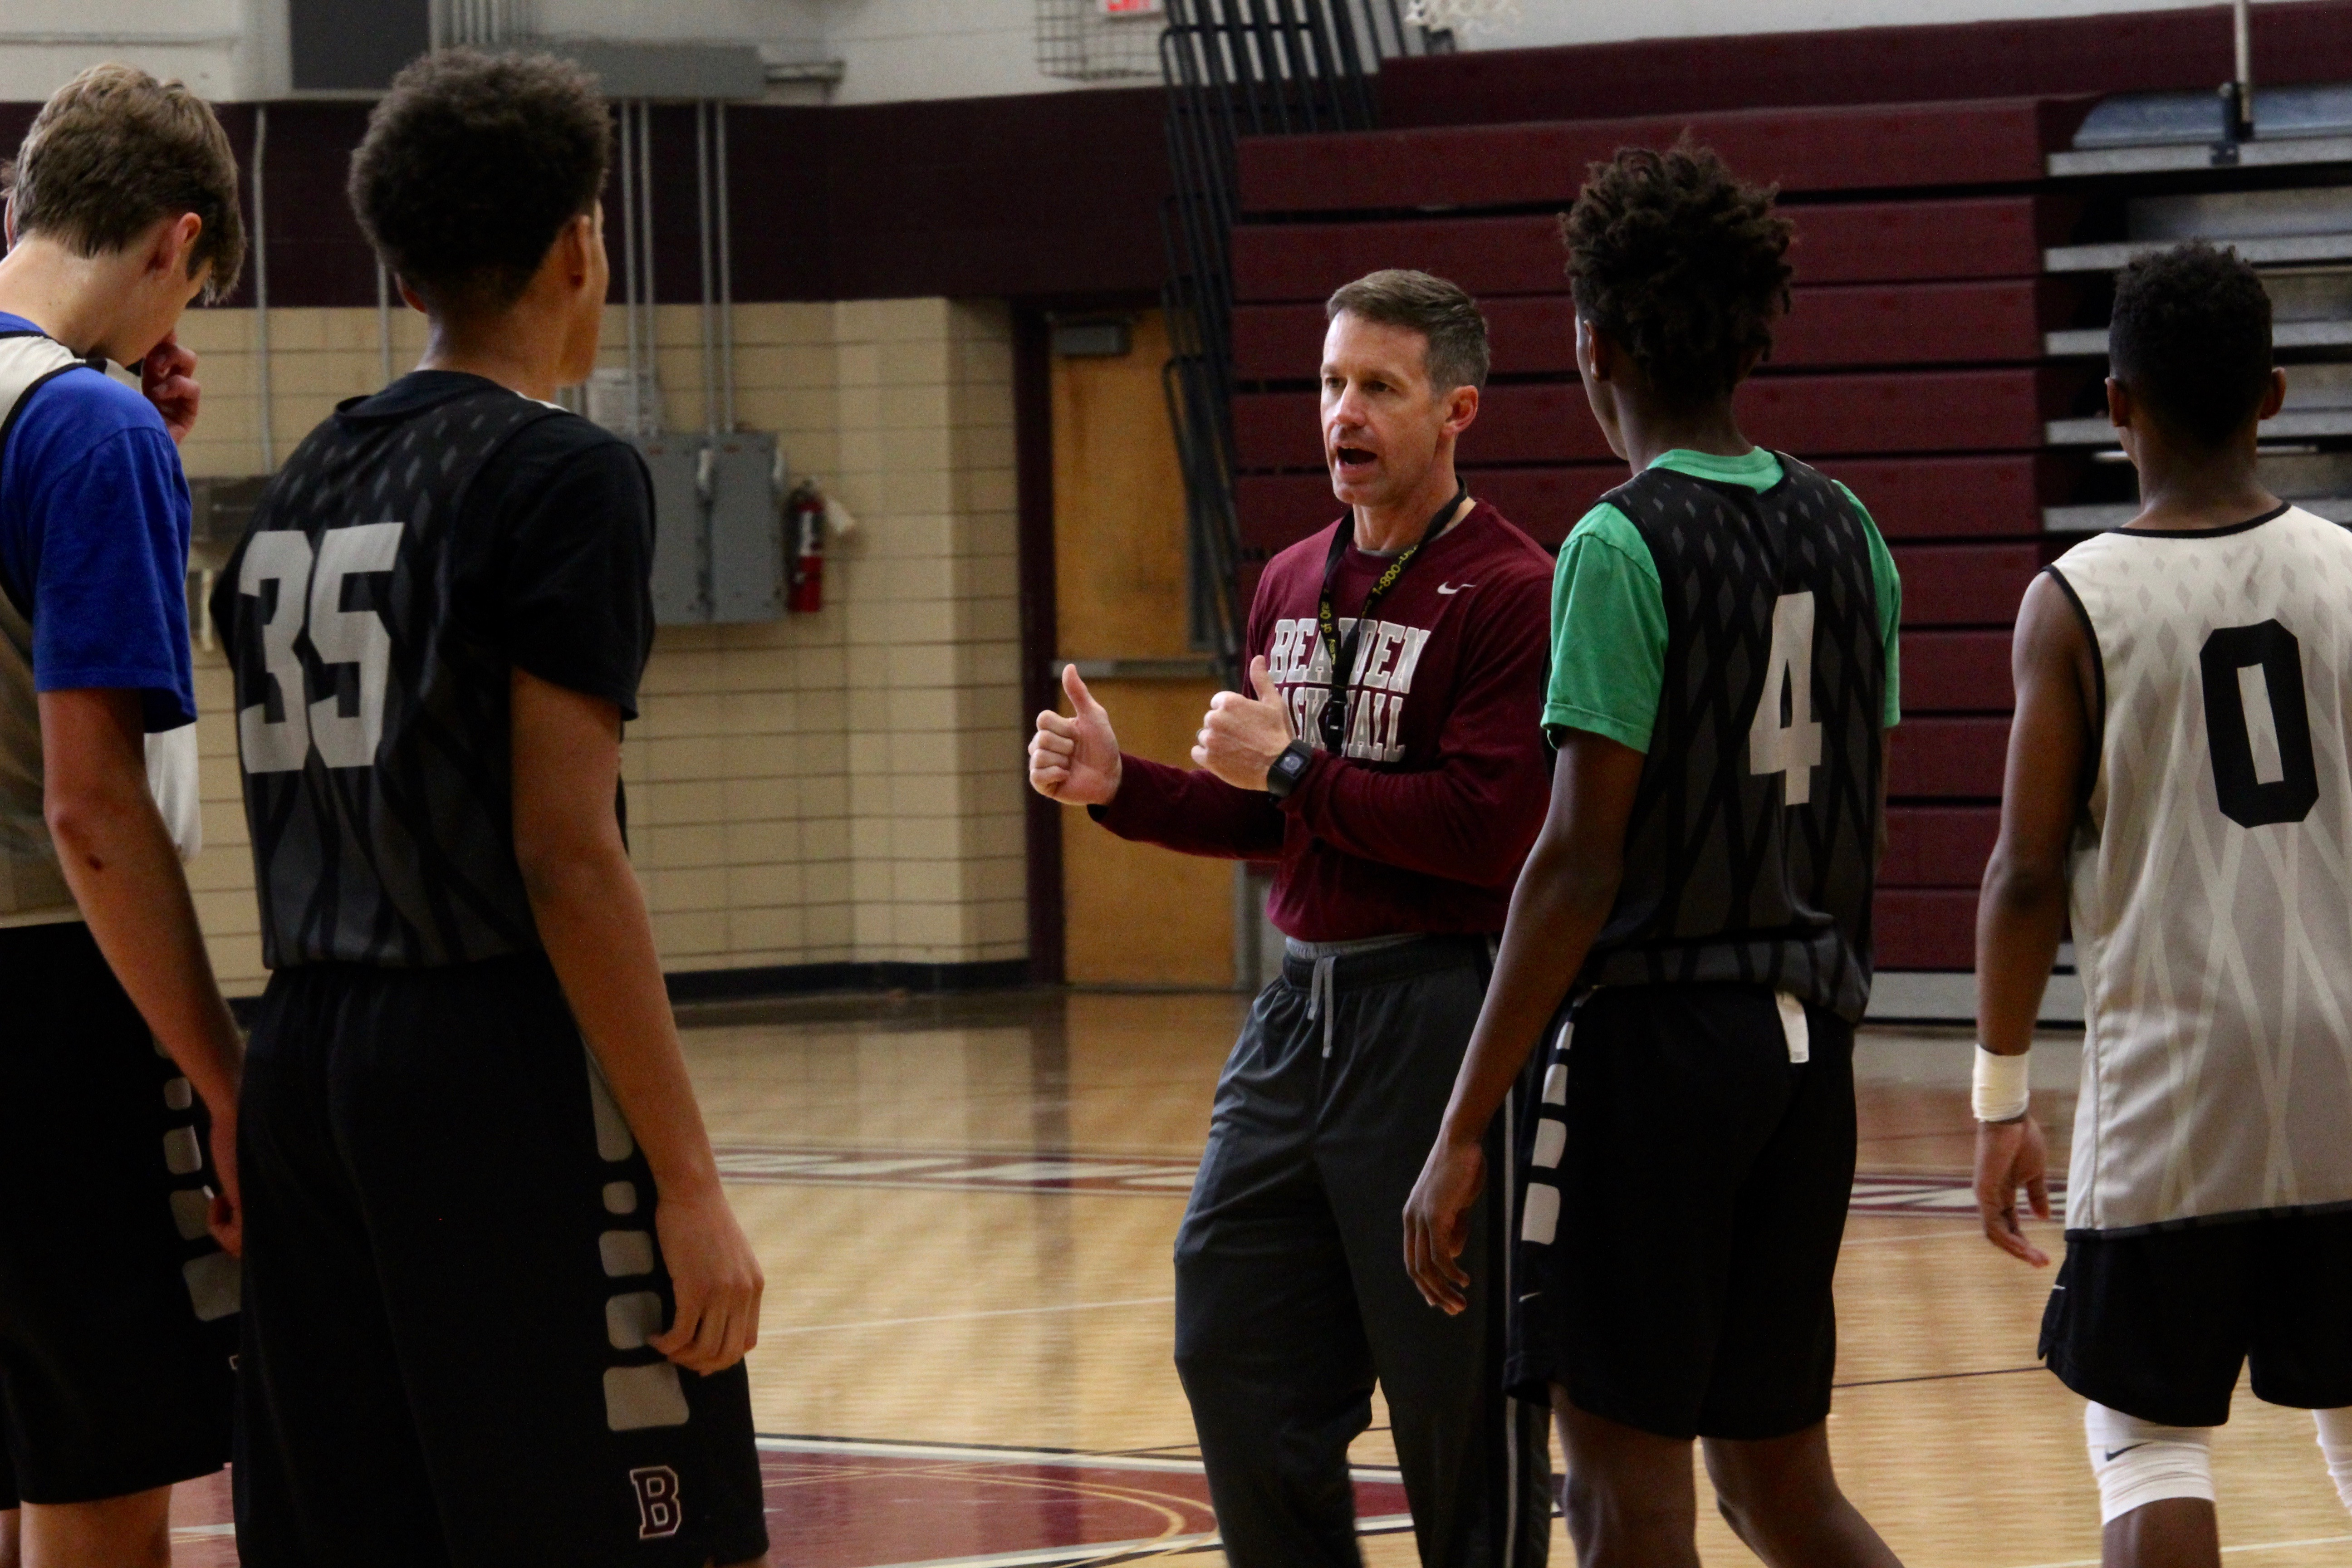 Parrott wins District 4-AAA Coach of the Year in his second season at BHS